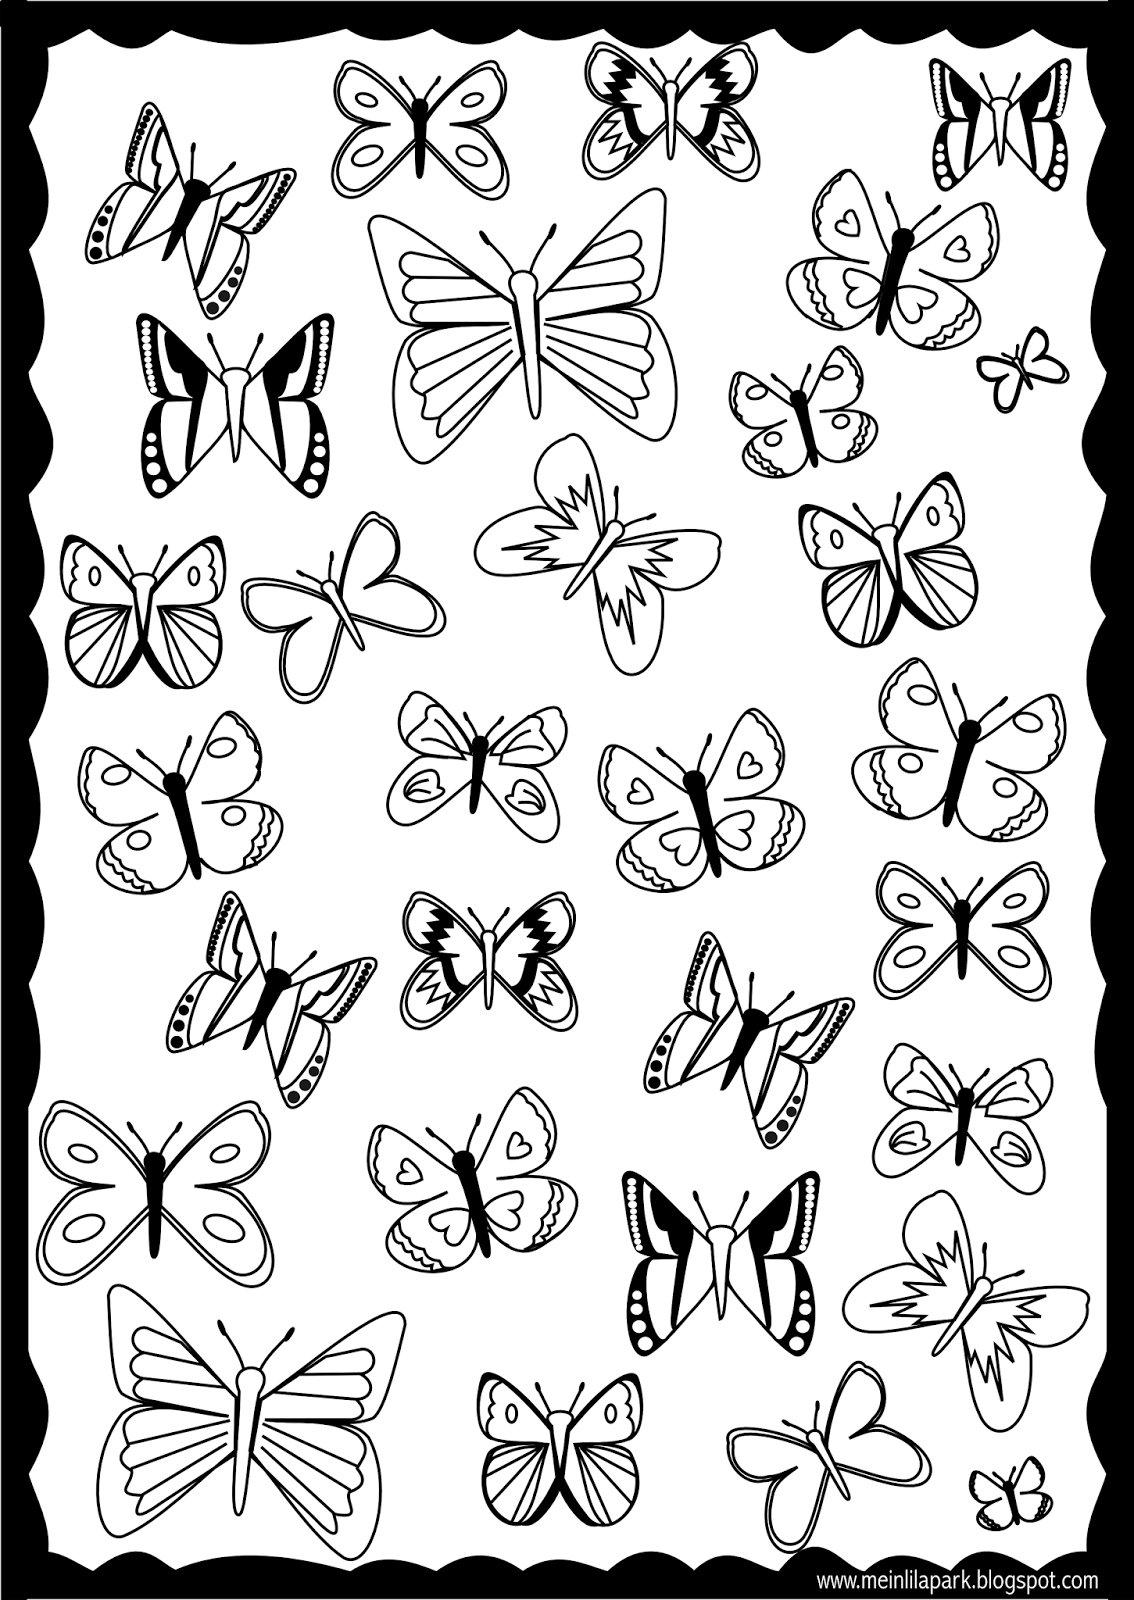 pictures to color of butterflies free printable butterfly coloring page ausdruckbare to color butterflies pictures of